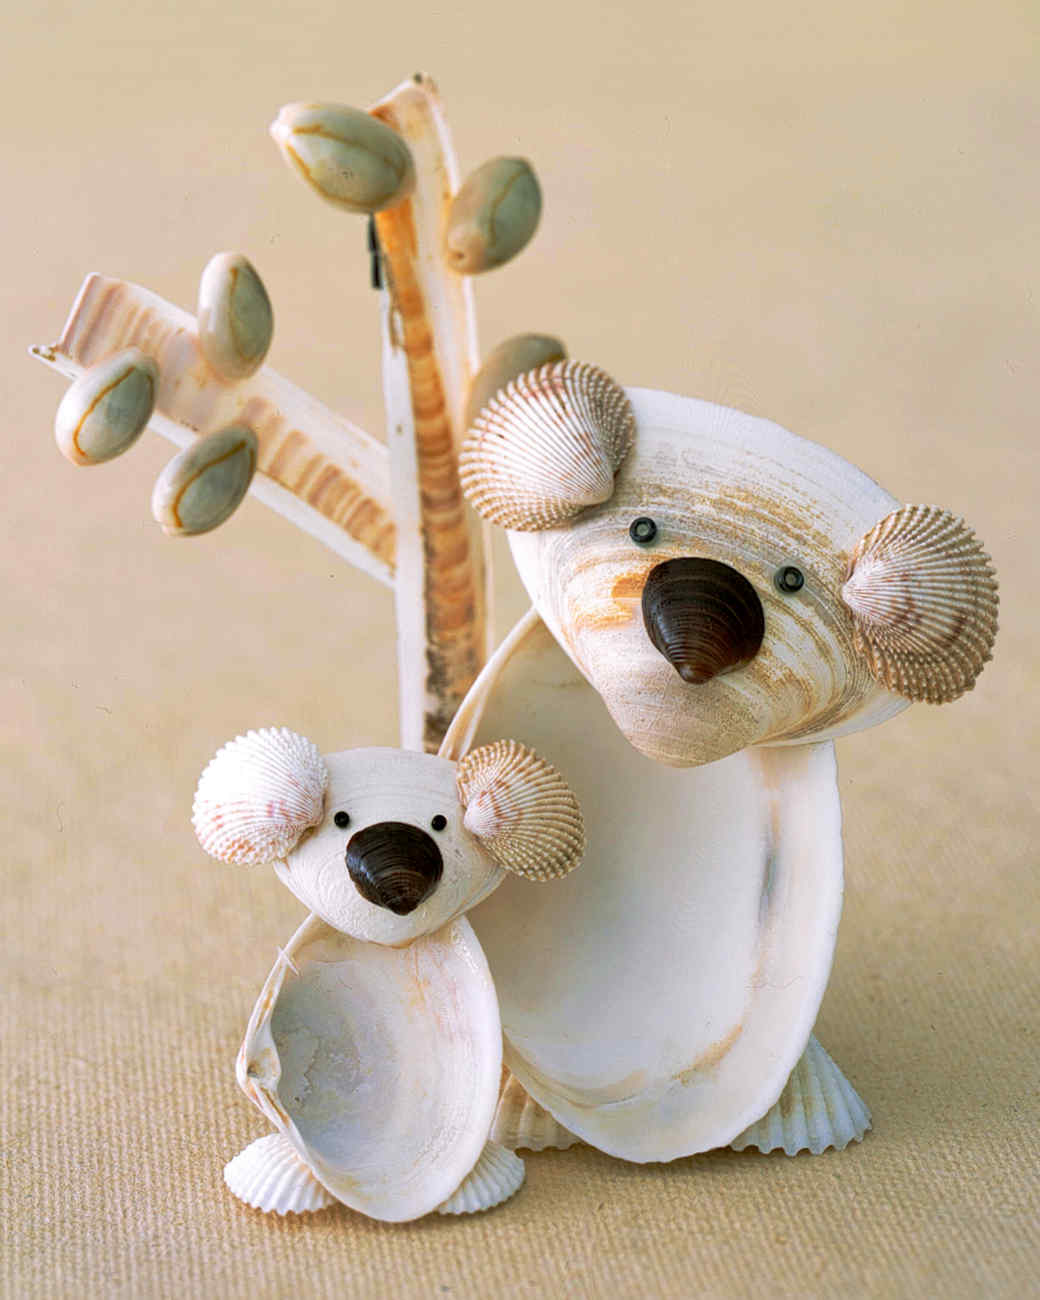 35 seashell crafts so your summer memories will last a